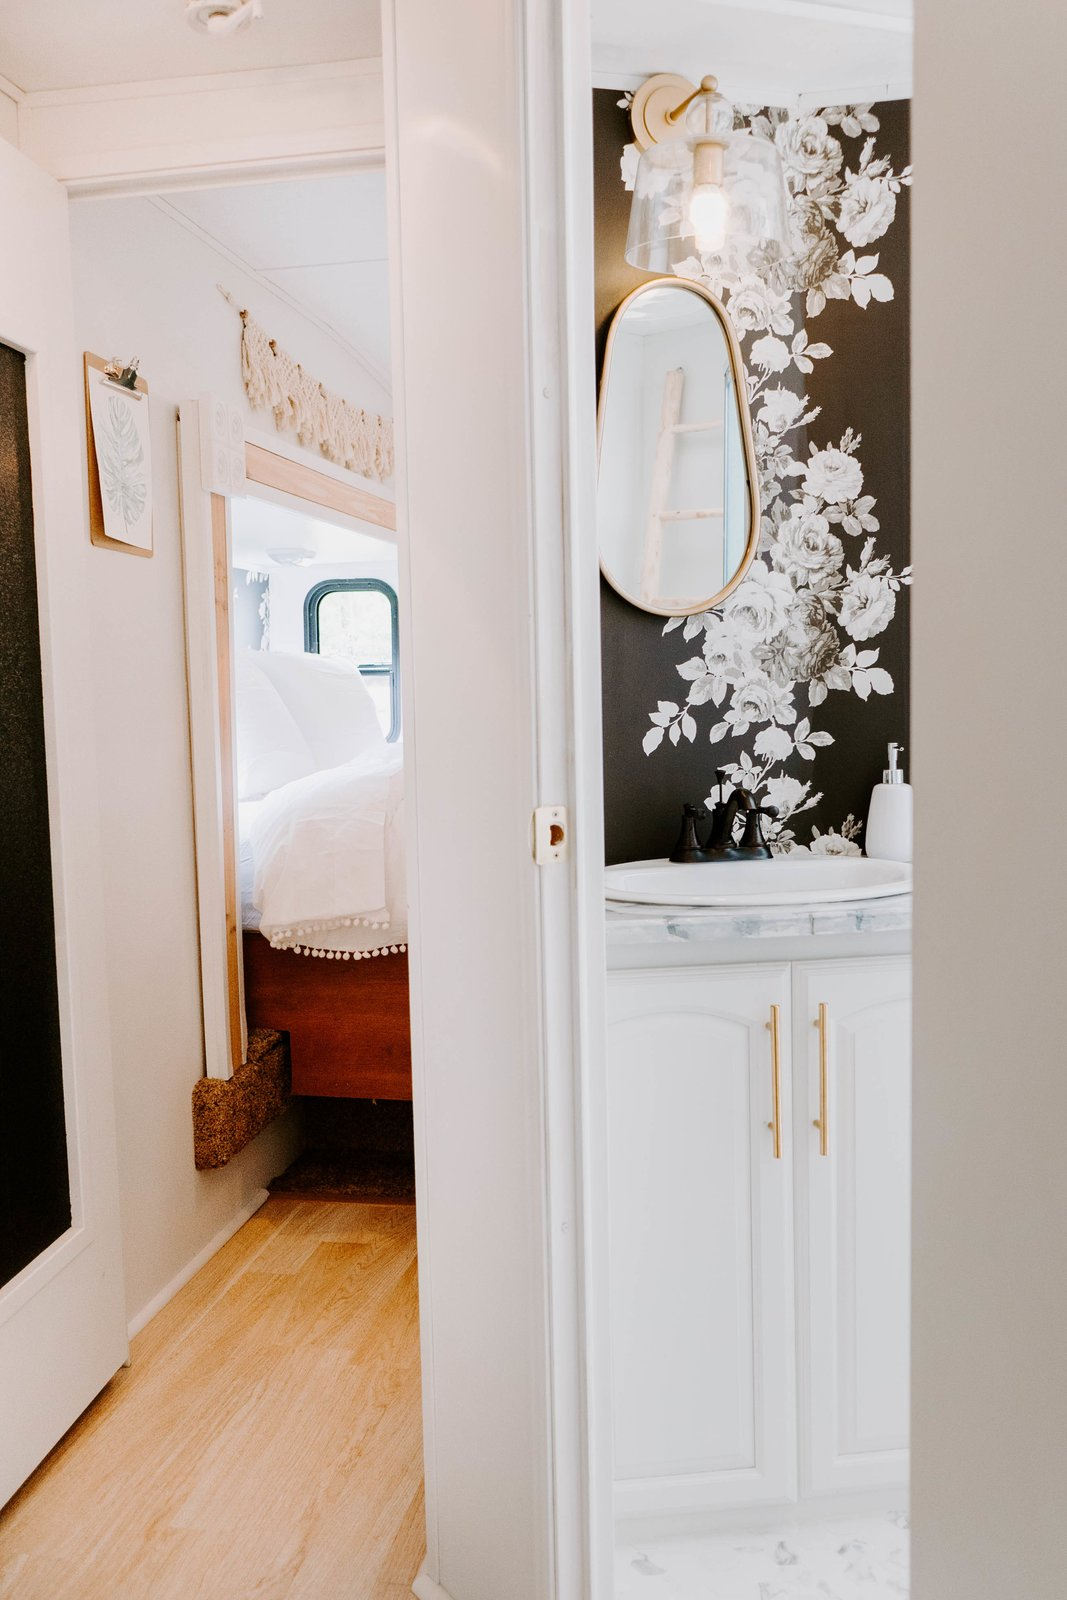 """Bath Room, Wall Lighting, Marble Counter, Drop In Sink, and Porcelain Tile Floor """"The bathroom may have been my favorite transformation,"""" explains Lauren. """"I spotted some beautiful inspiration from Studio McGee and I was hooked on the floral wallpaper idea.""""    The Cougar"""